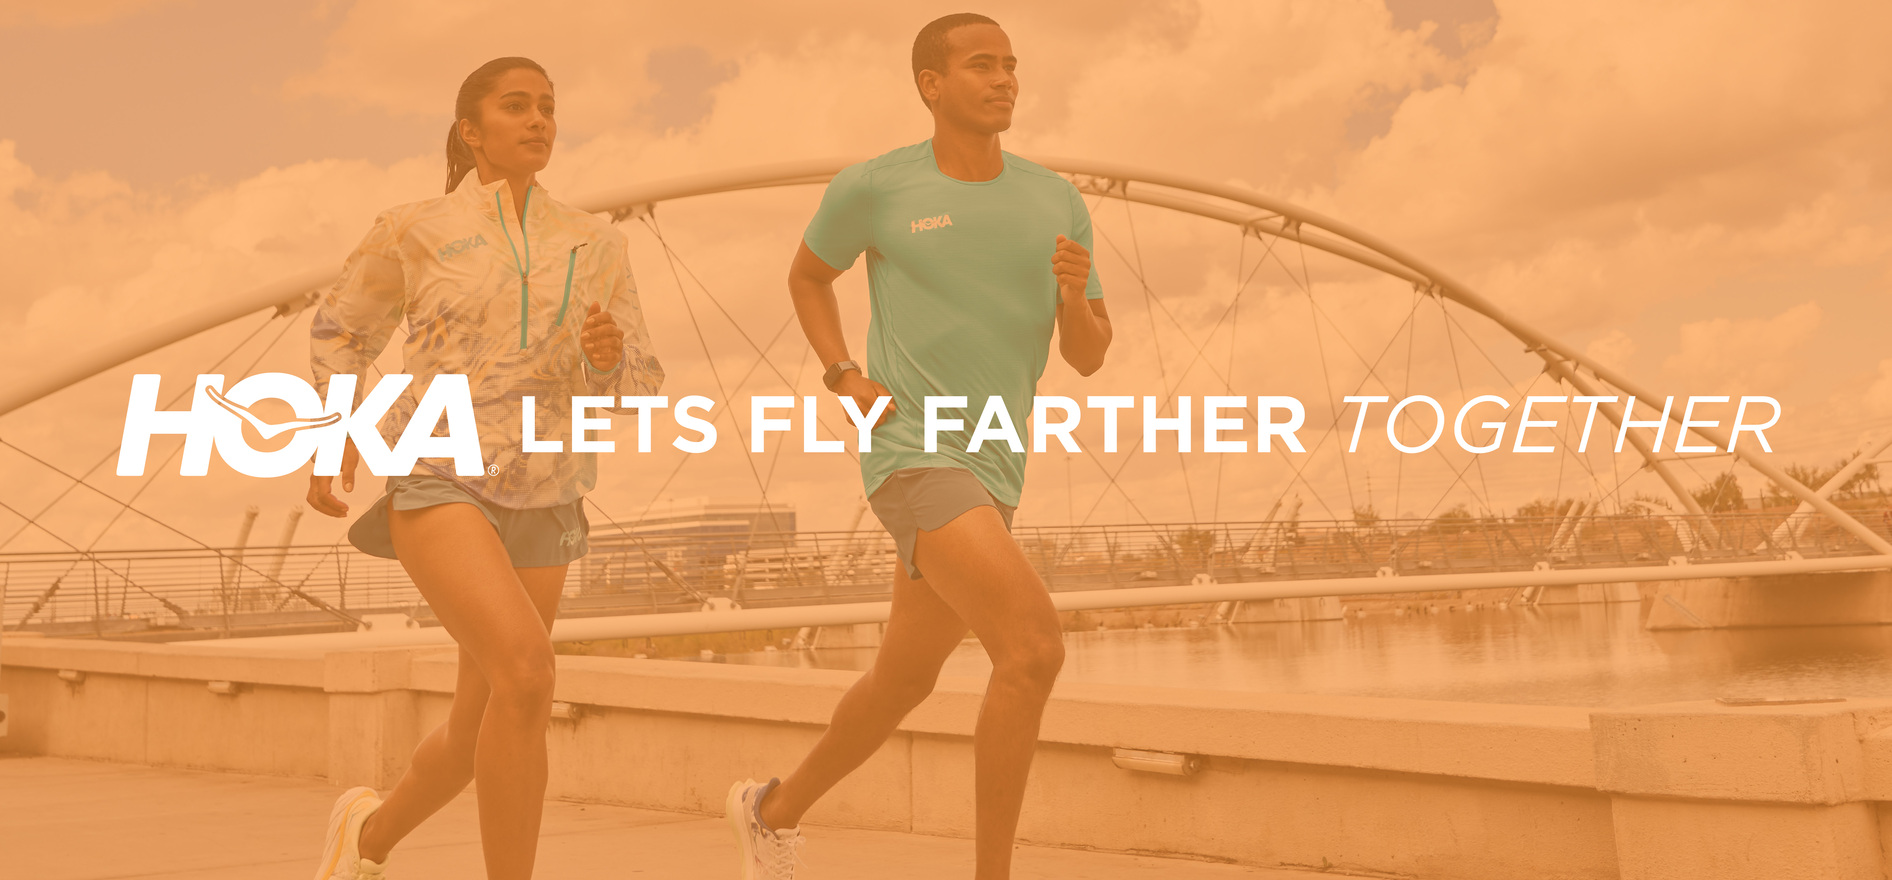 Let's Fly Farther Together